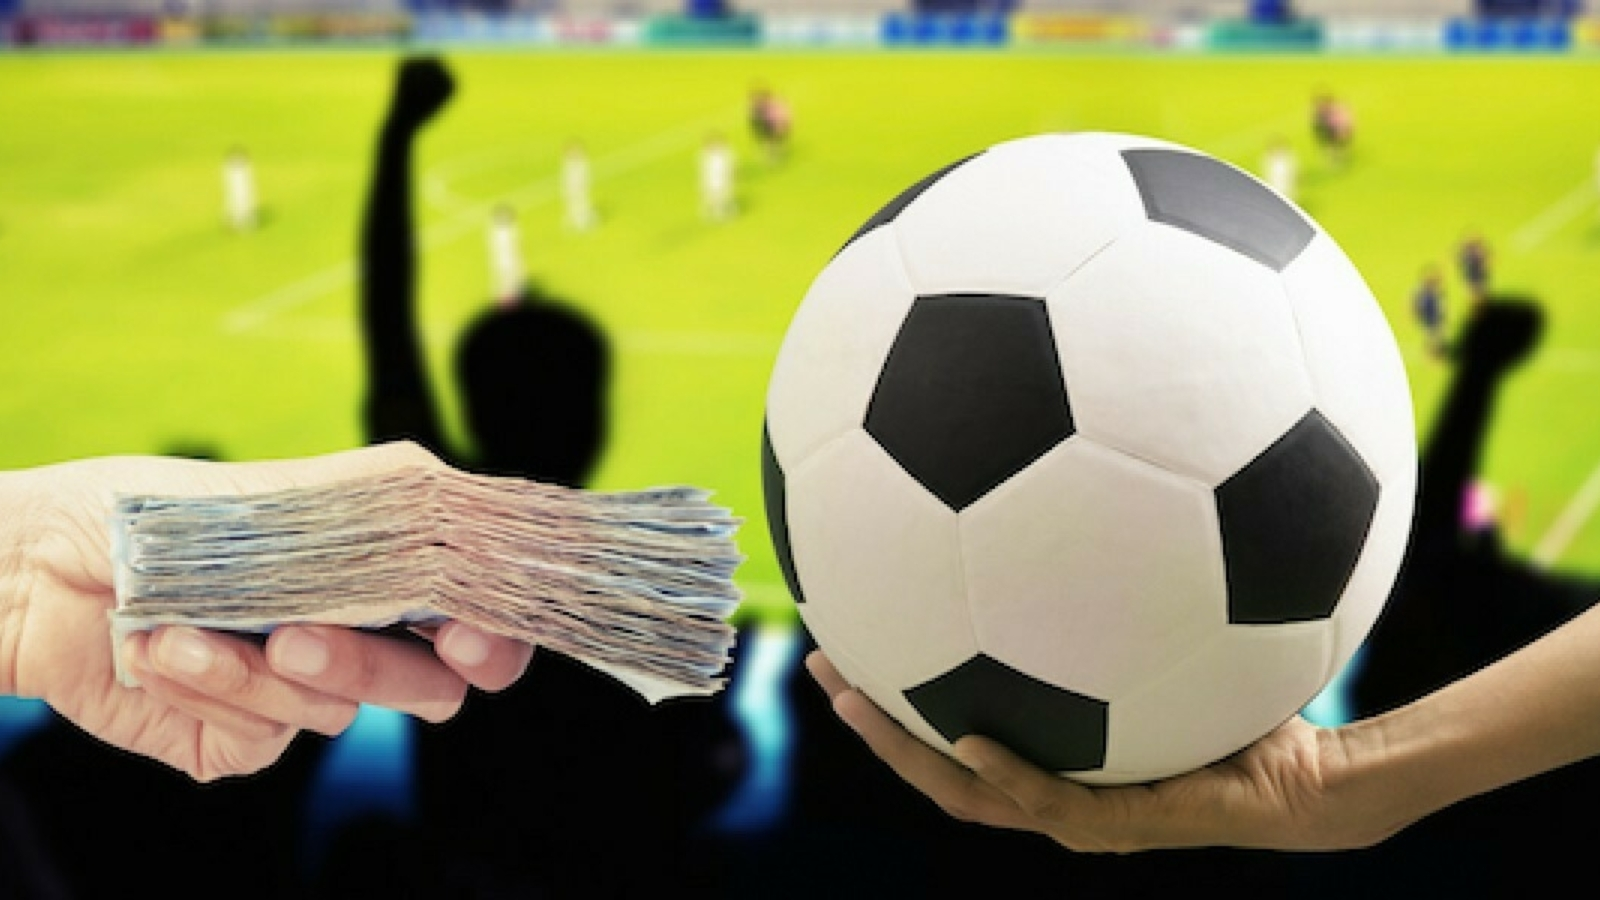 Both teams to score tips for your weekend accumulator - The